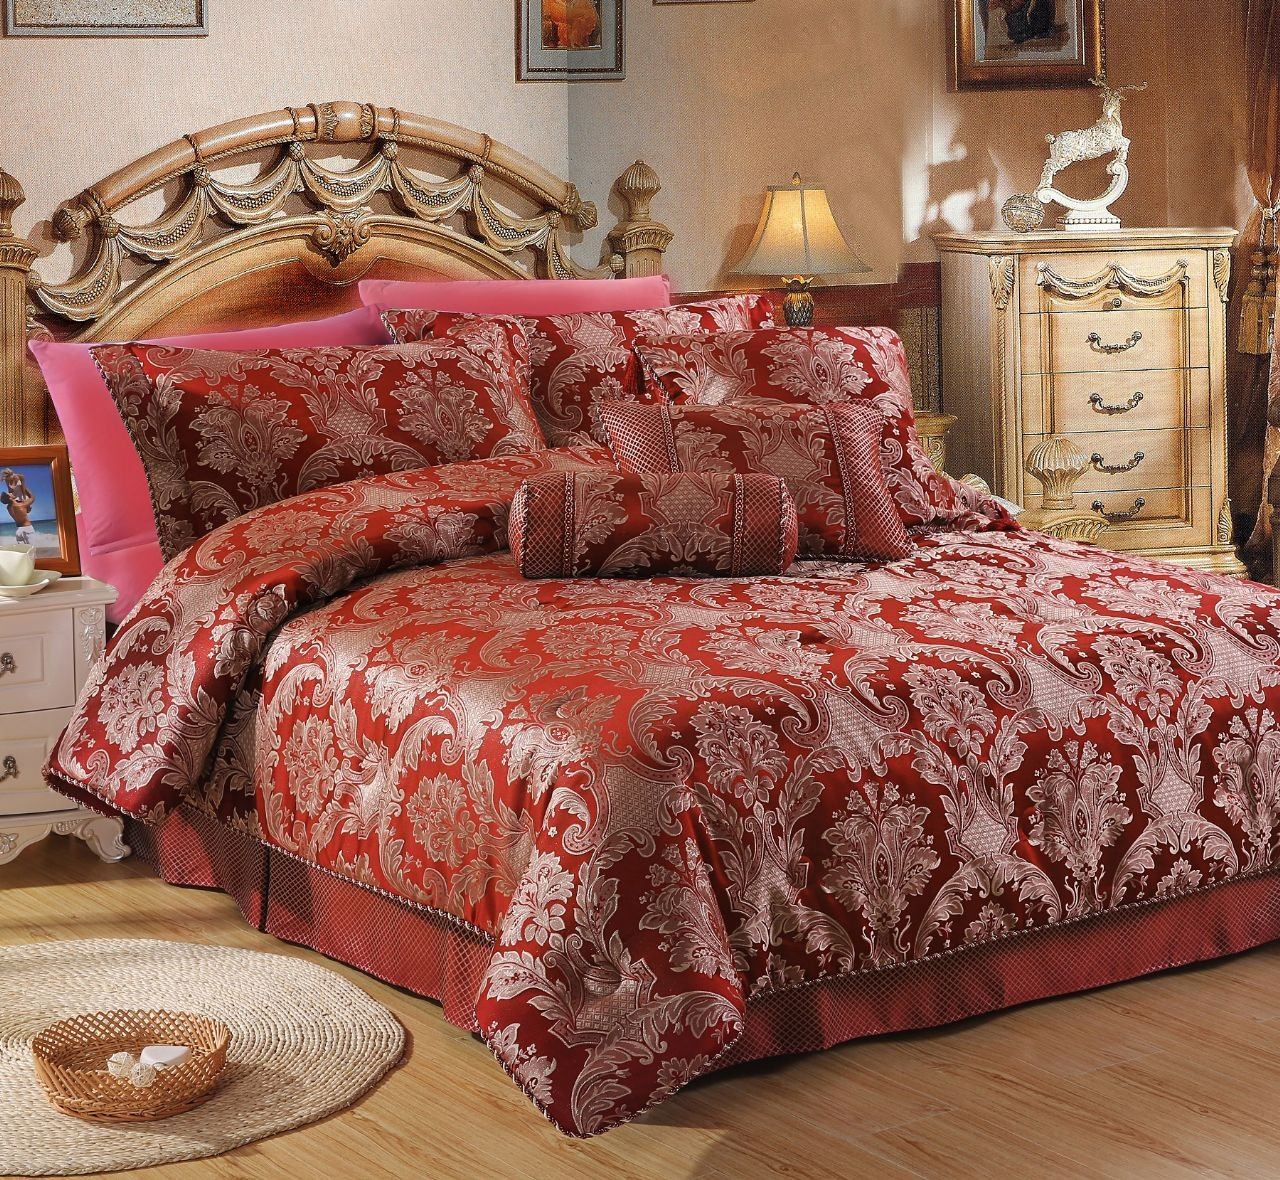 Carrington Burgundy - Complete Luxury Jacquard Woven Bedroom Sets 9 / 10 Piece (Single 9 Piece Complete Bedroom Set) Cocoon